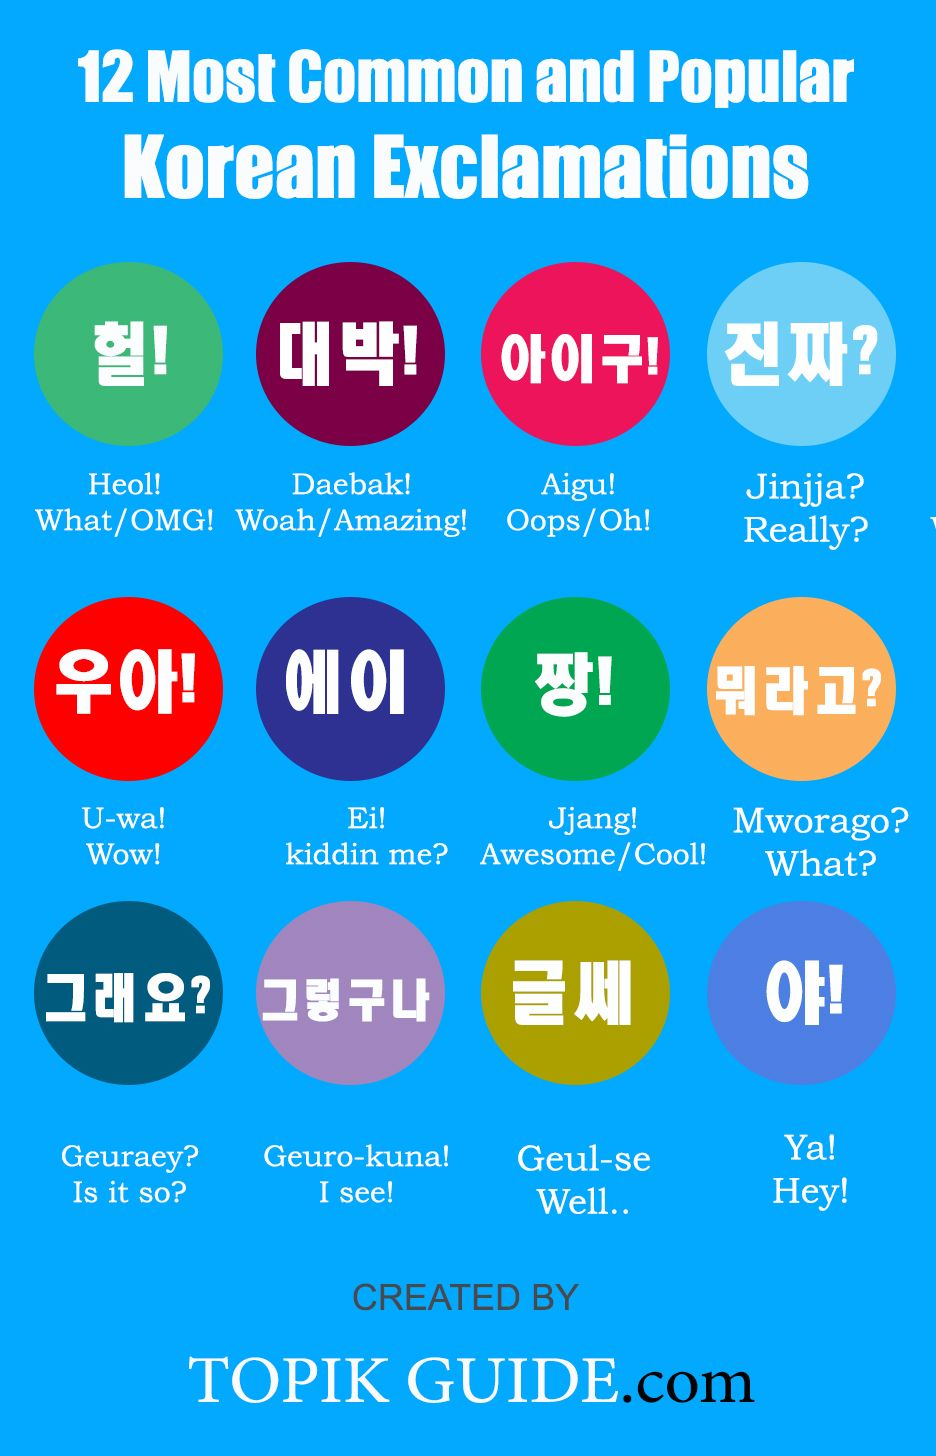 12 Most Common Korean Exclamations